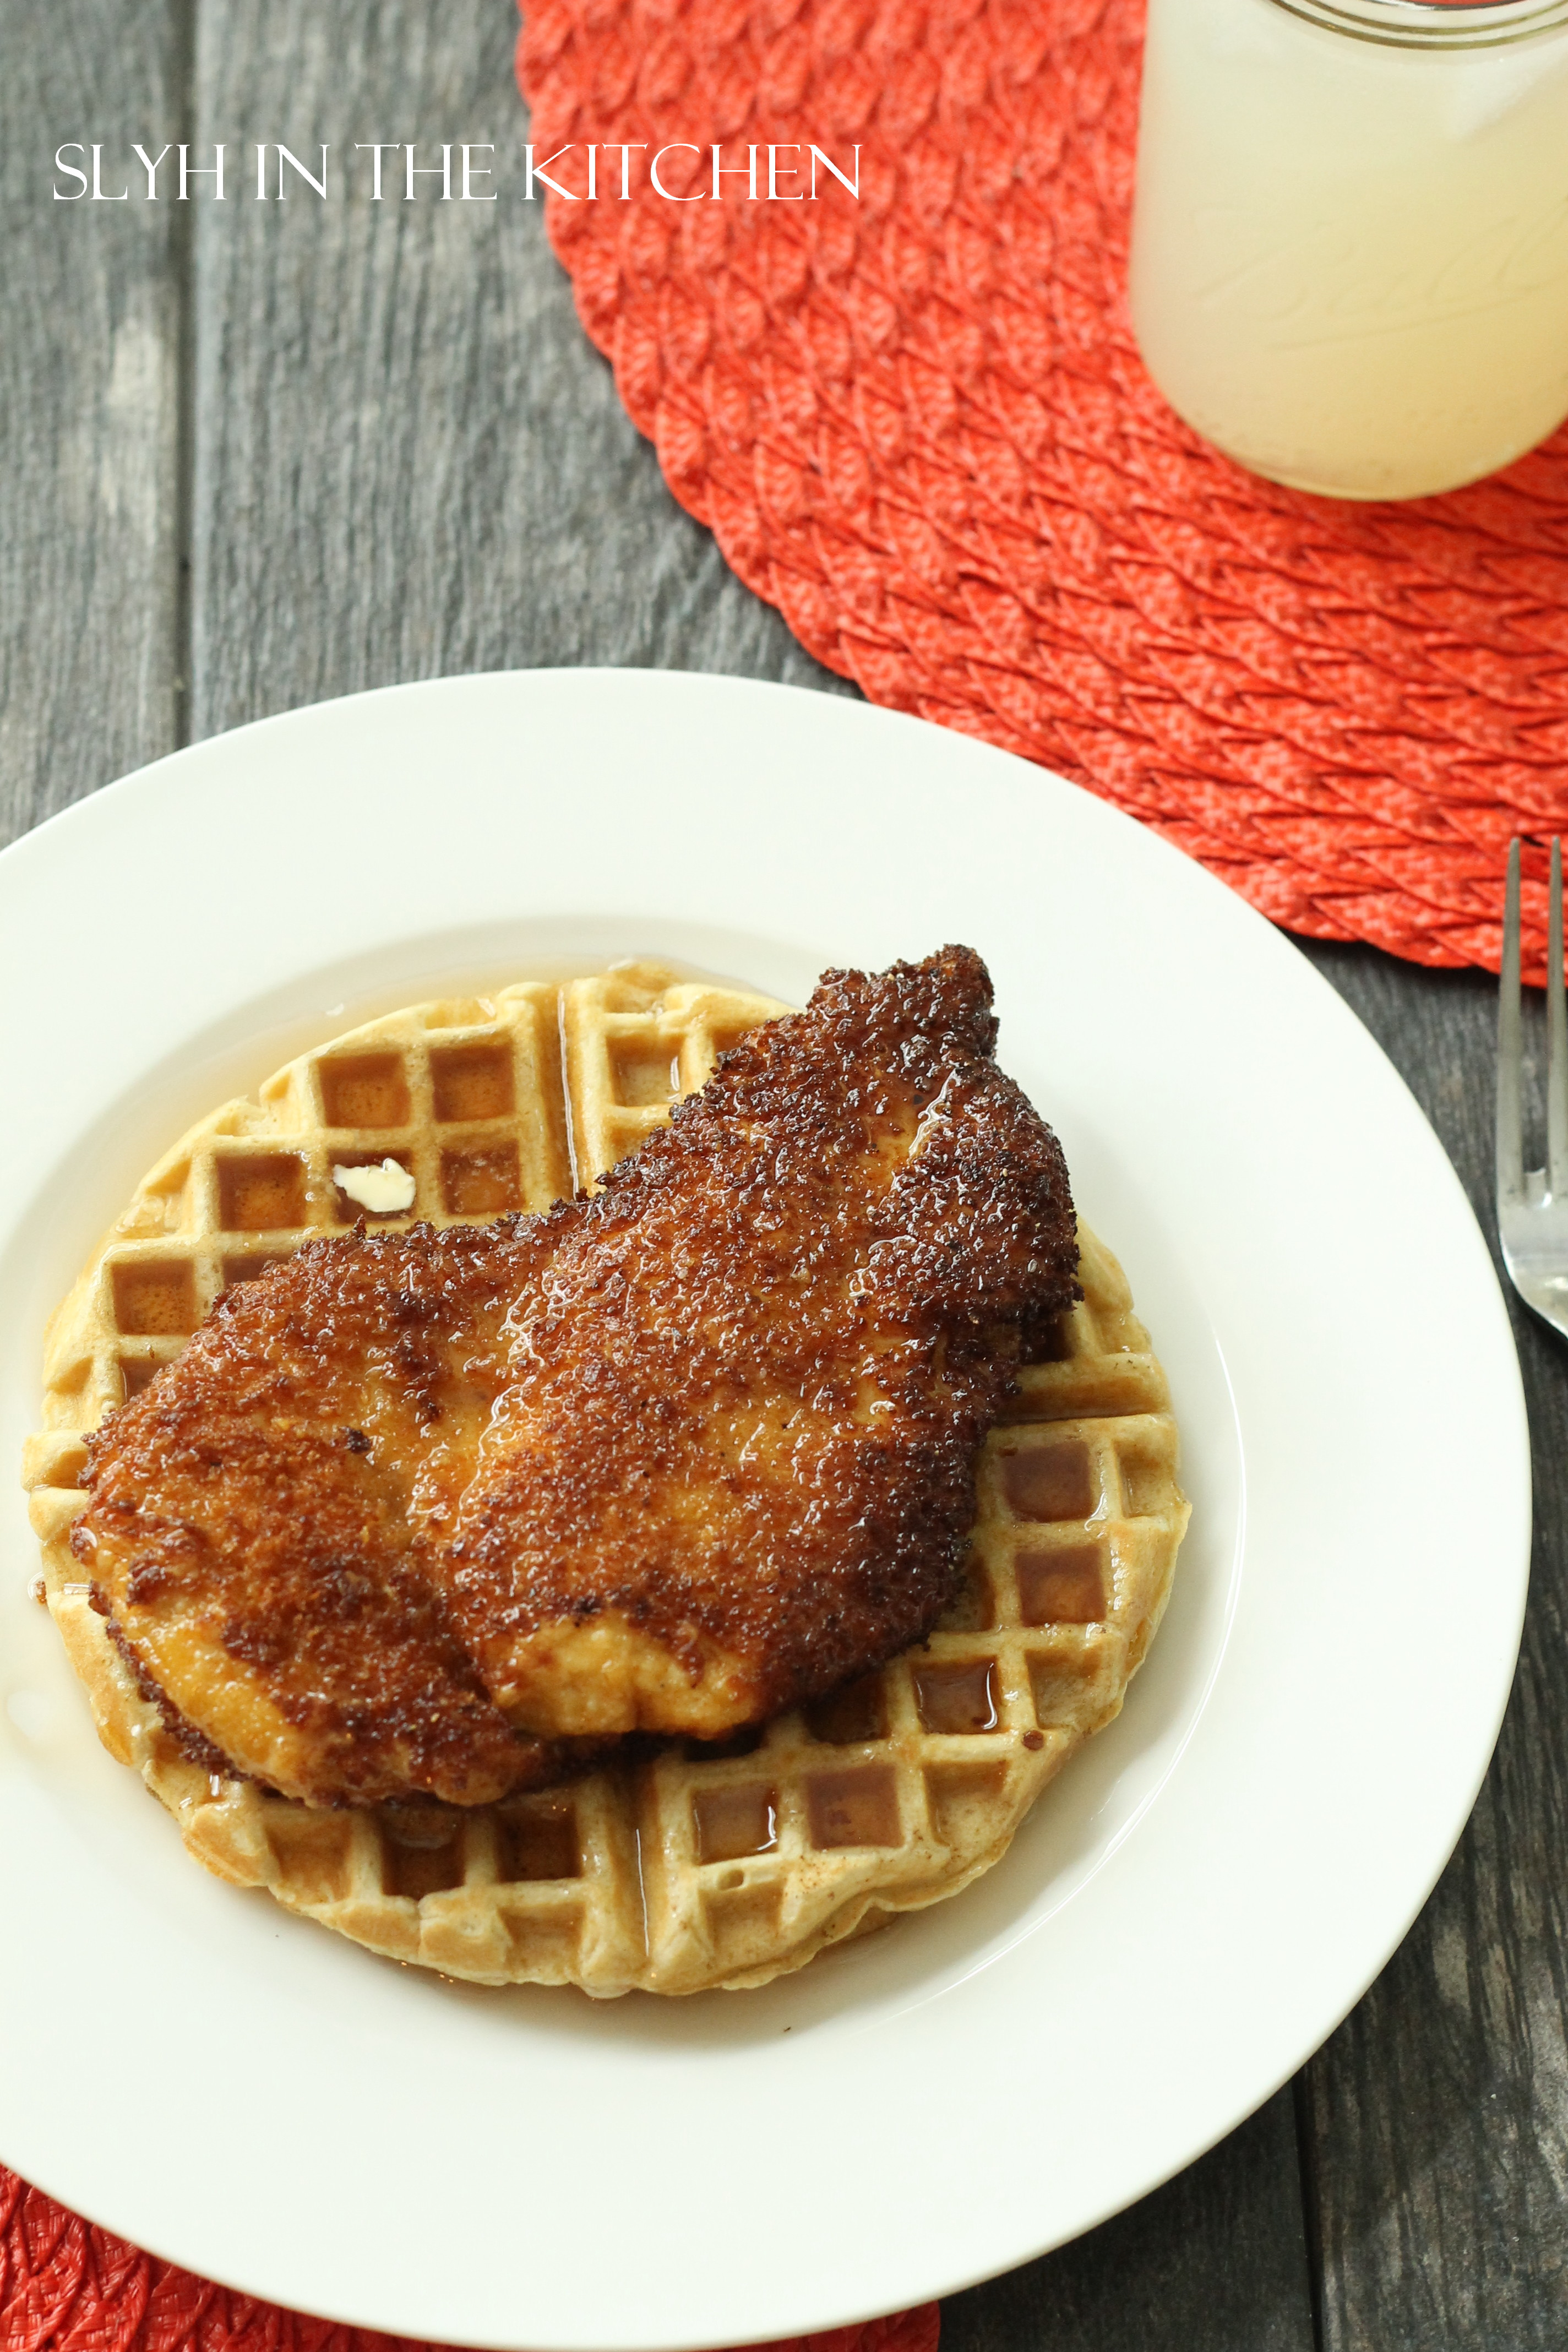 Chicken And Waffles Slyh In The Kitchen